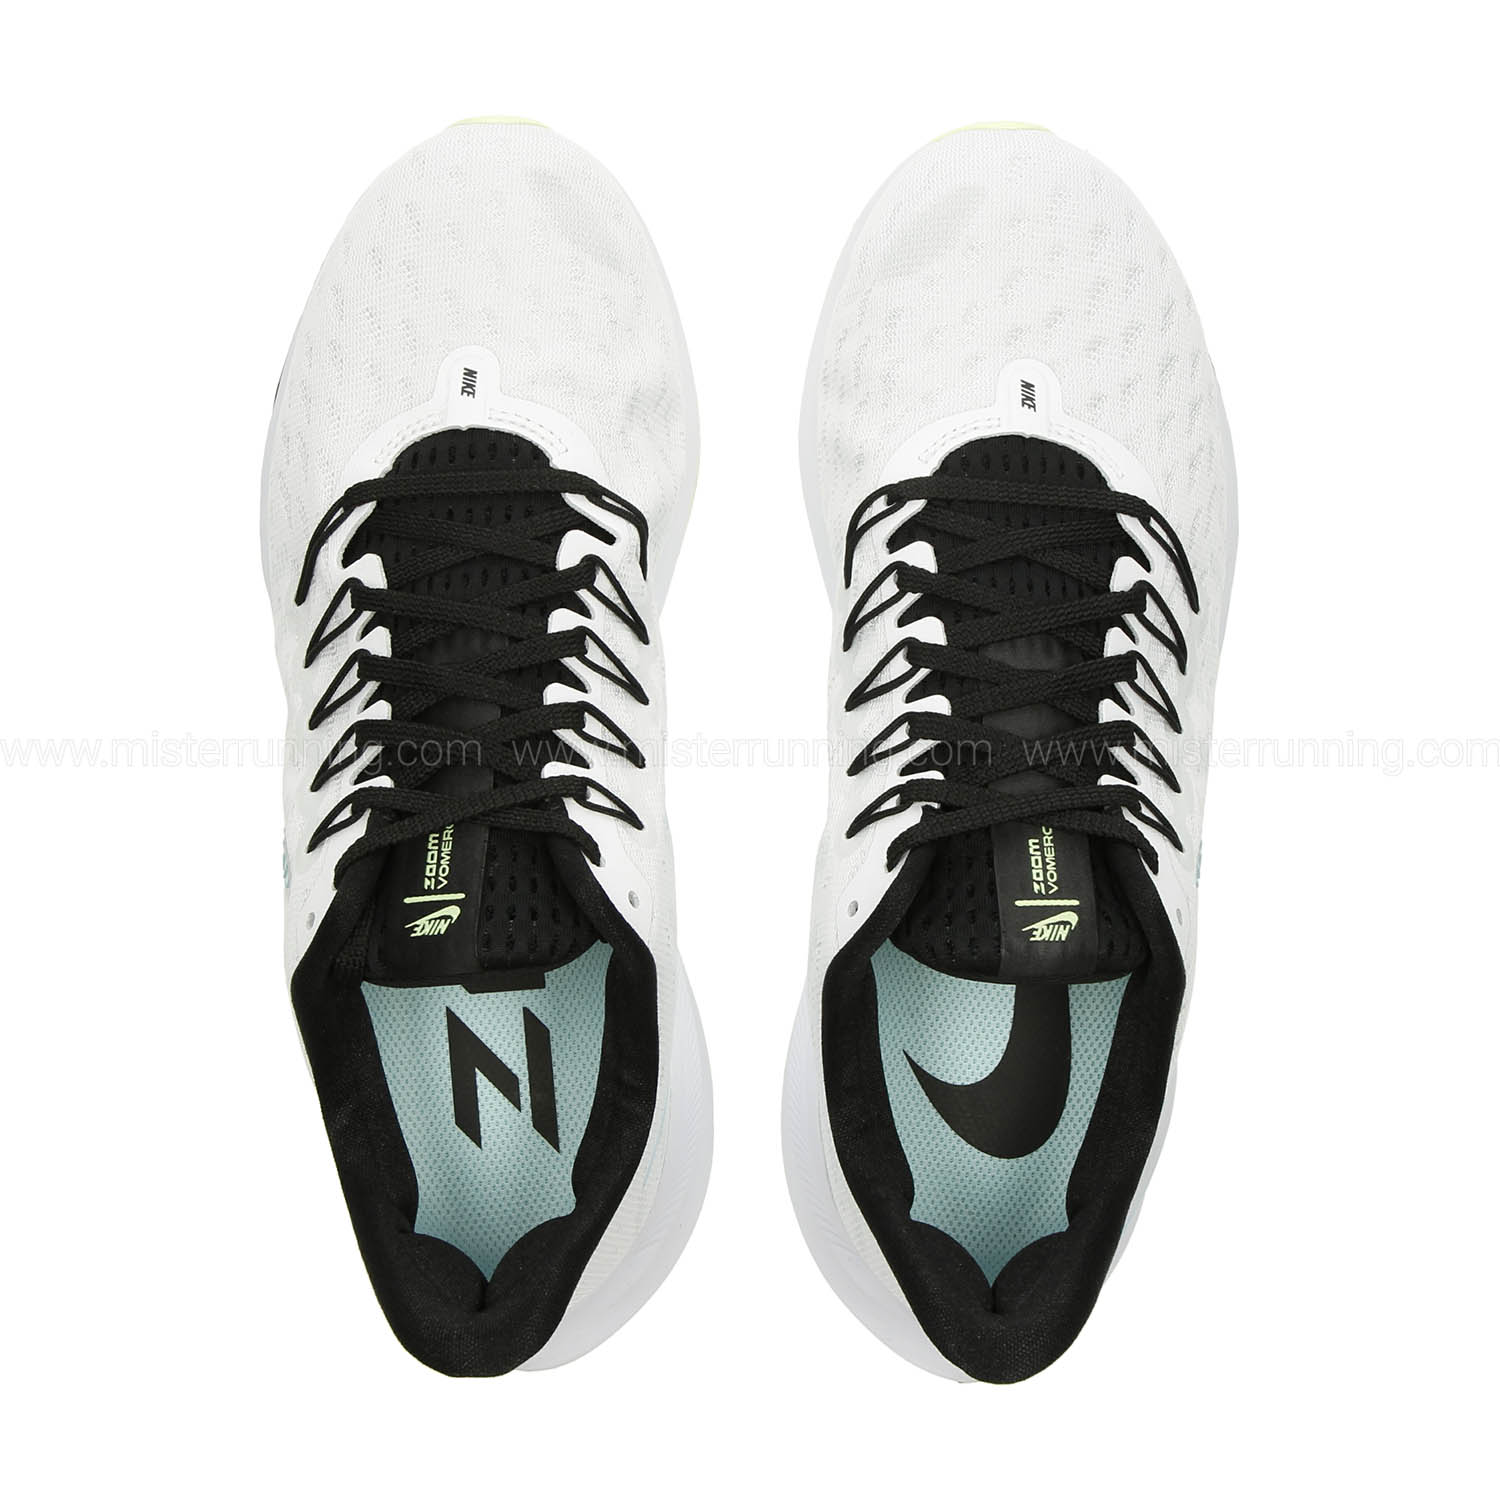 Nike Air Zoom Vomero 14 - White/Glacier Ice/Black/Pure Platinum